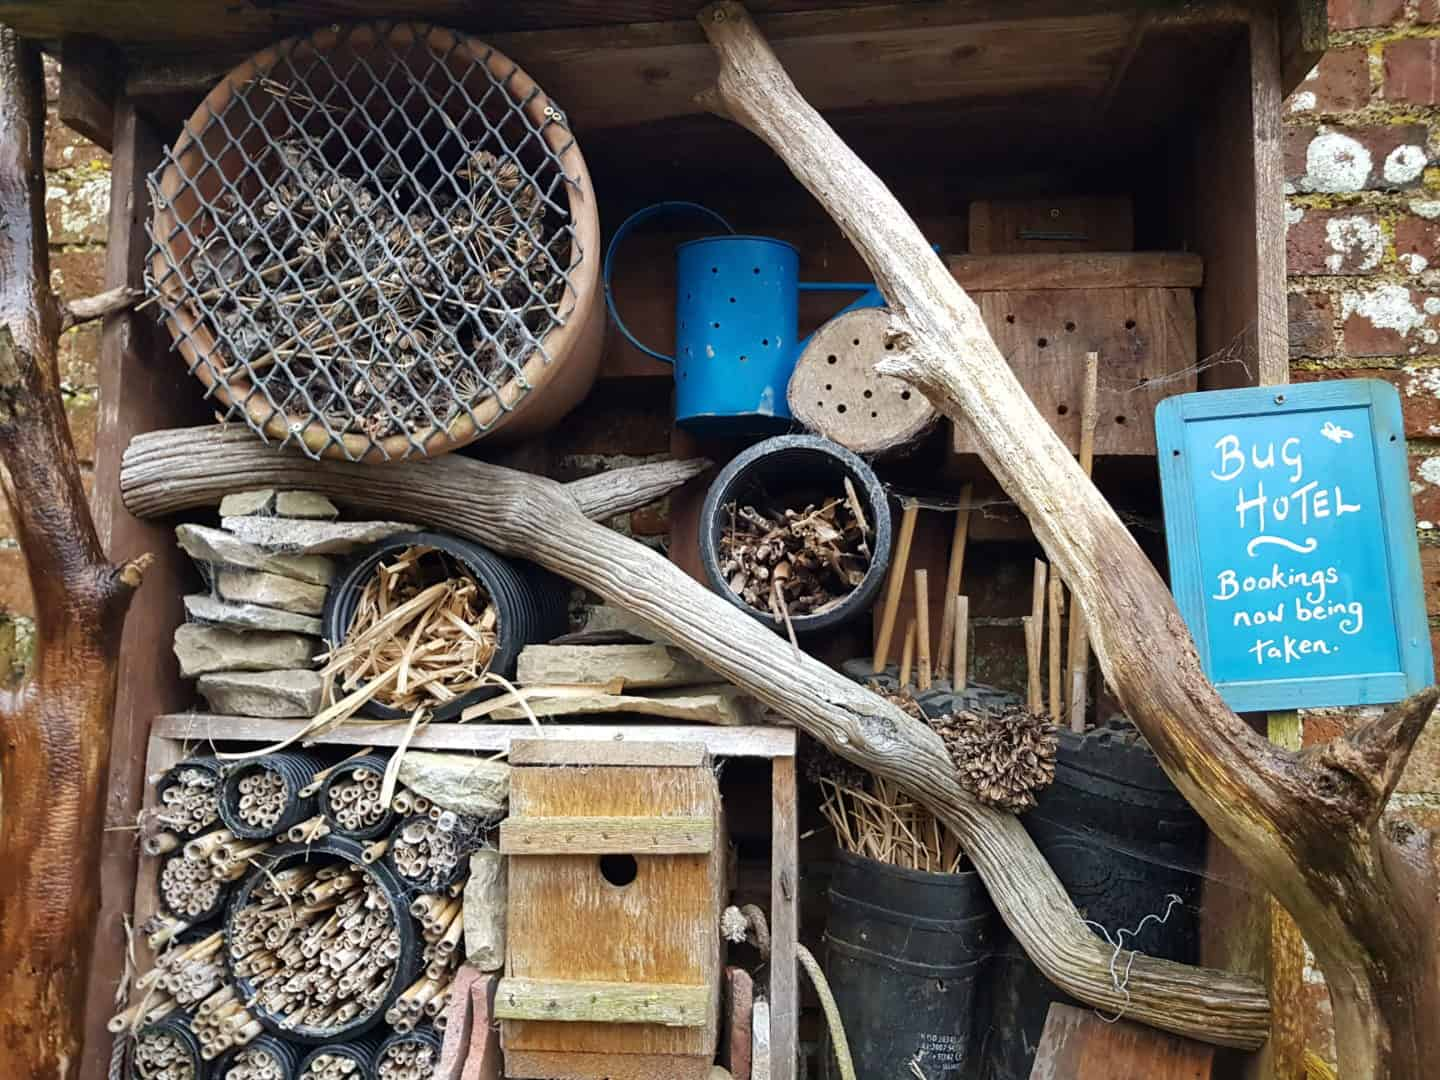 National Trust membership bug hotel